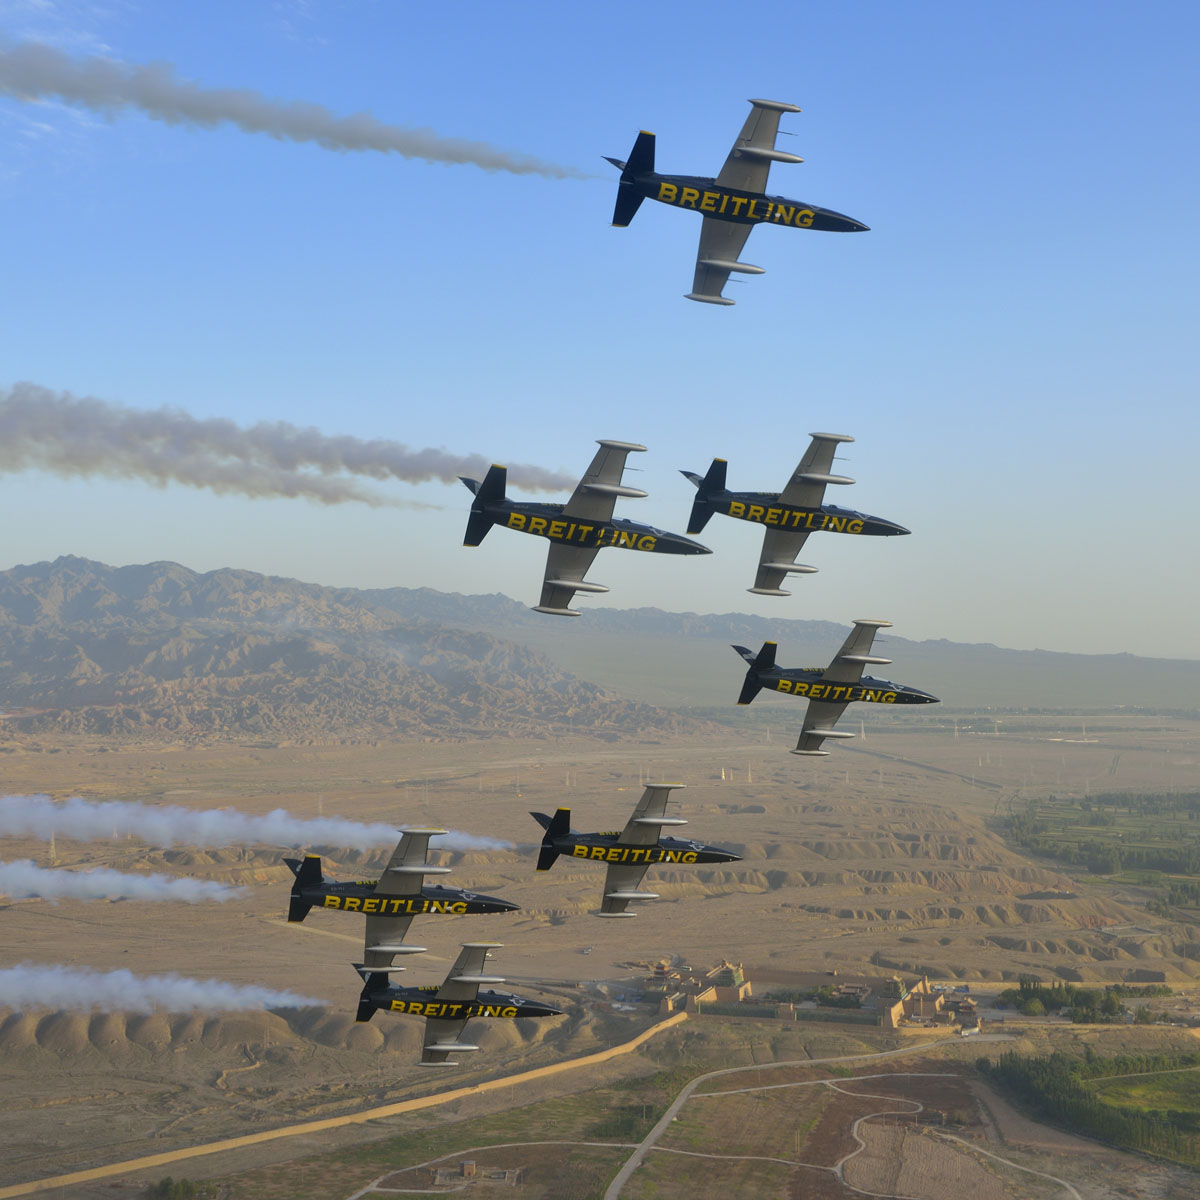 The Watch Quote: Photo - The Breitling Jet team soars over the Great Wall of China